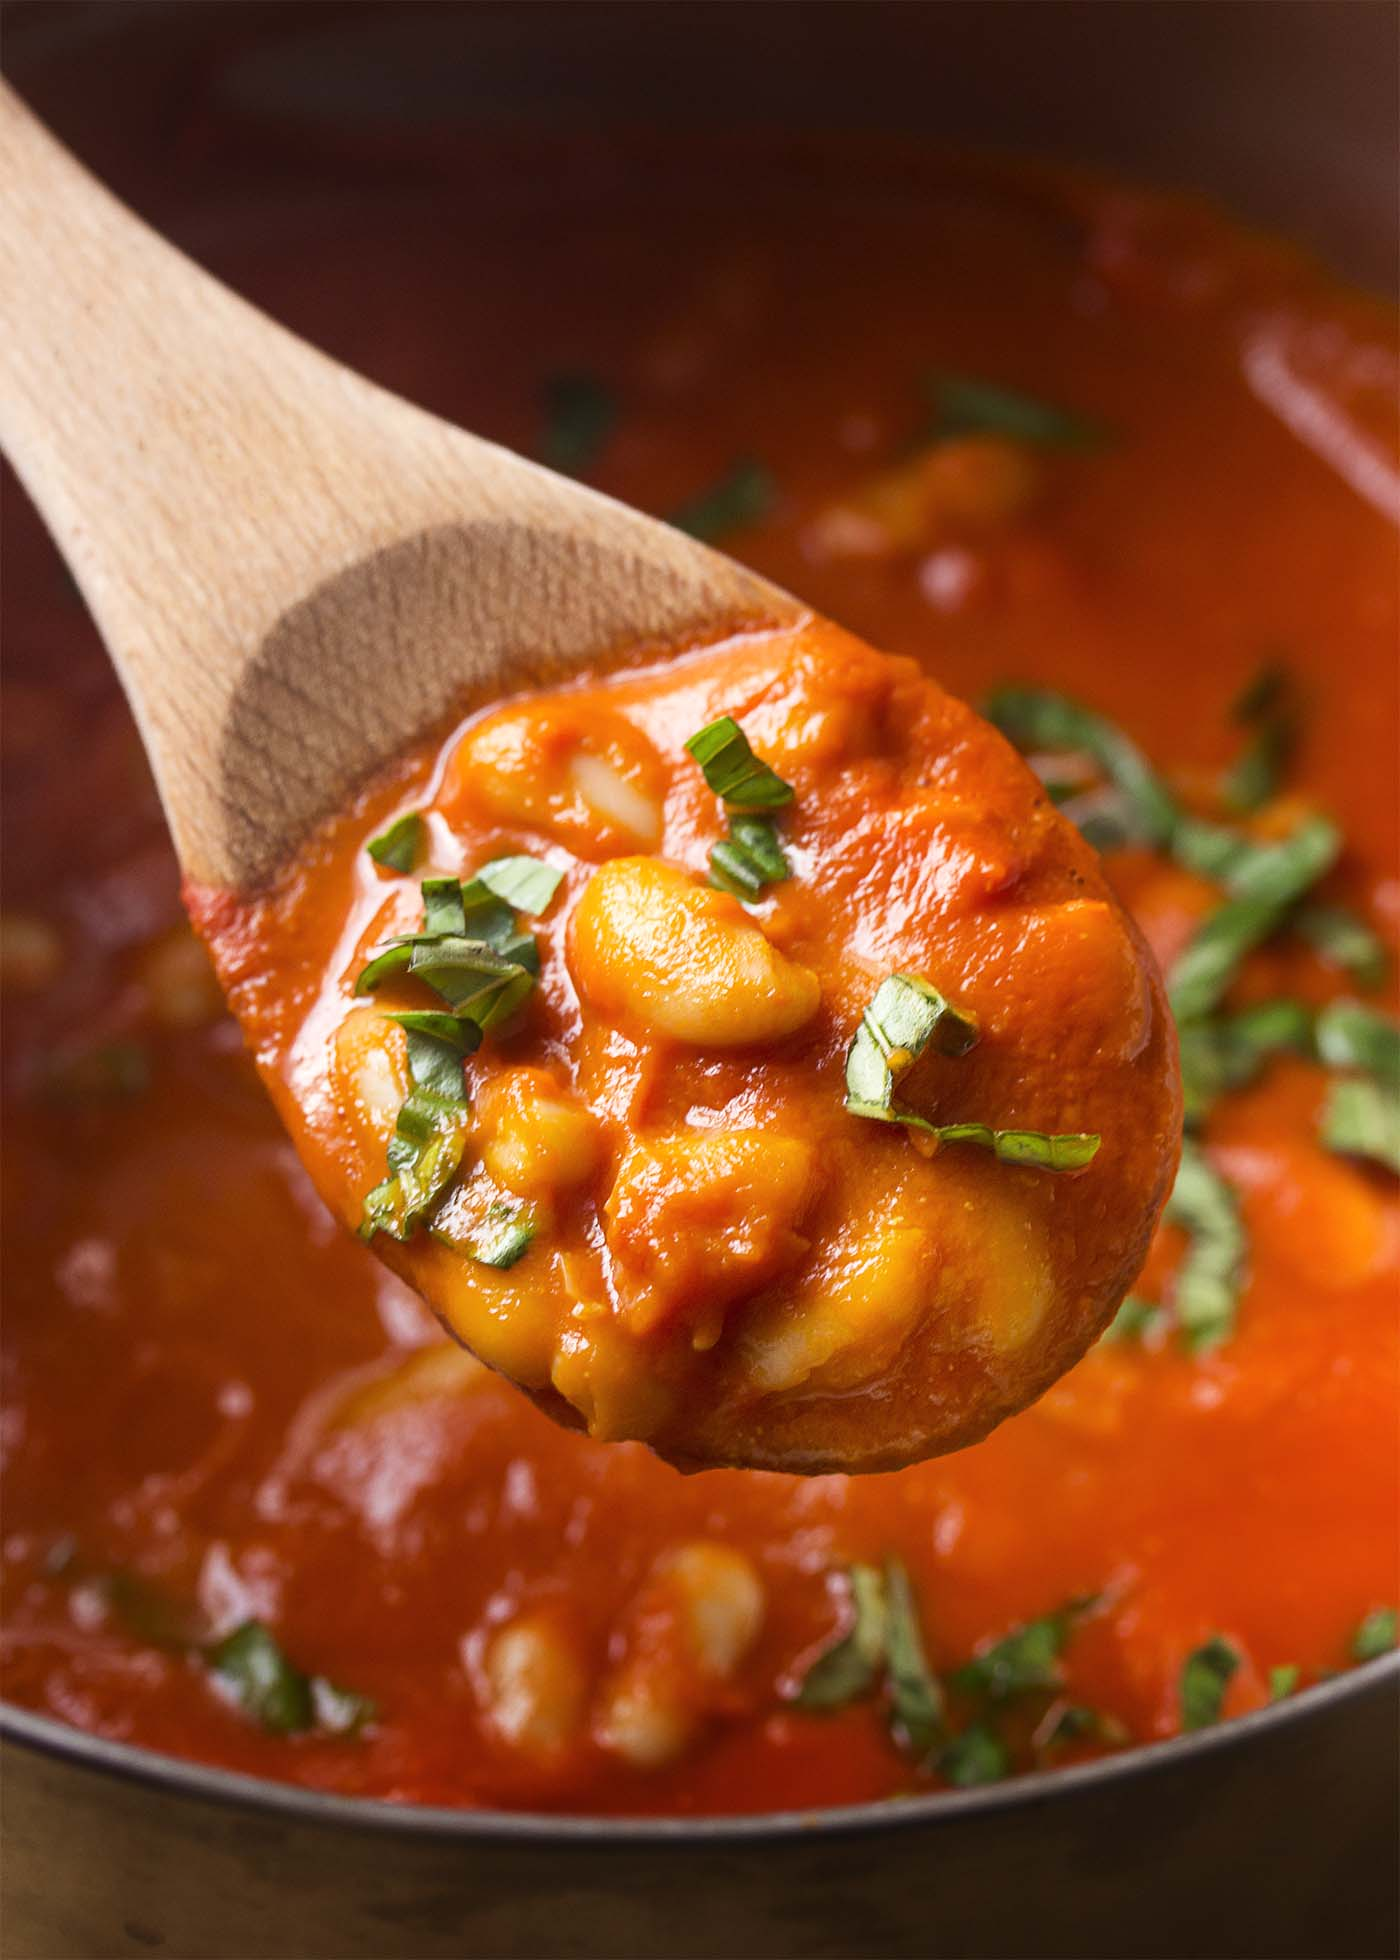 A wooden spoon lifting a spoonful of beans and sauce out of a pot.